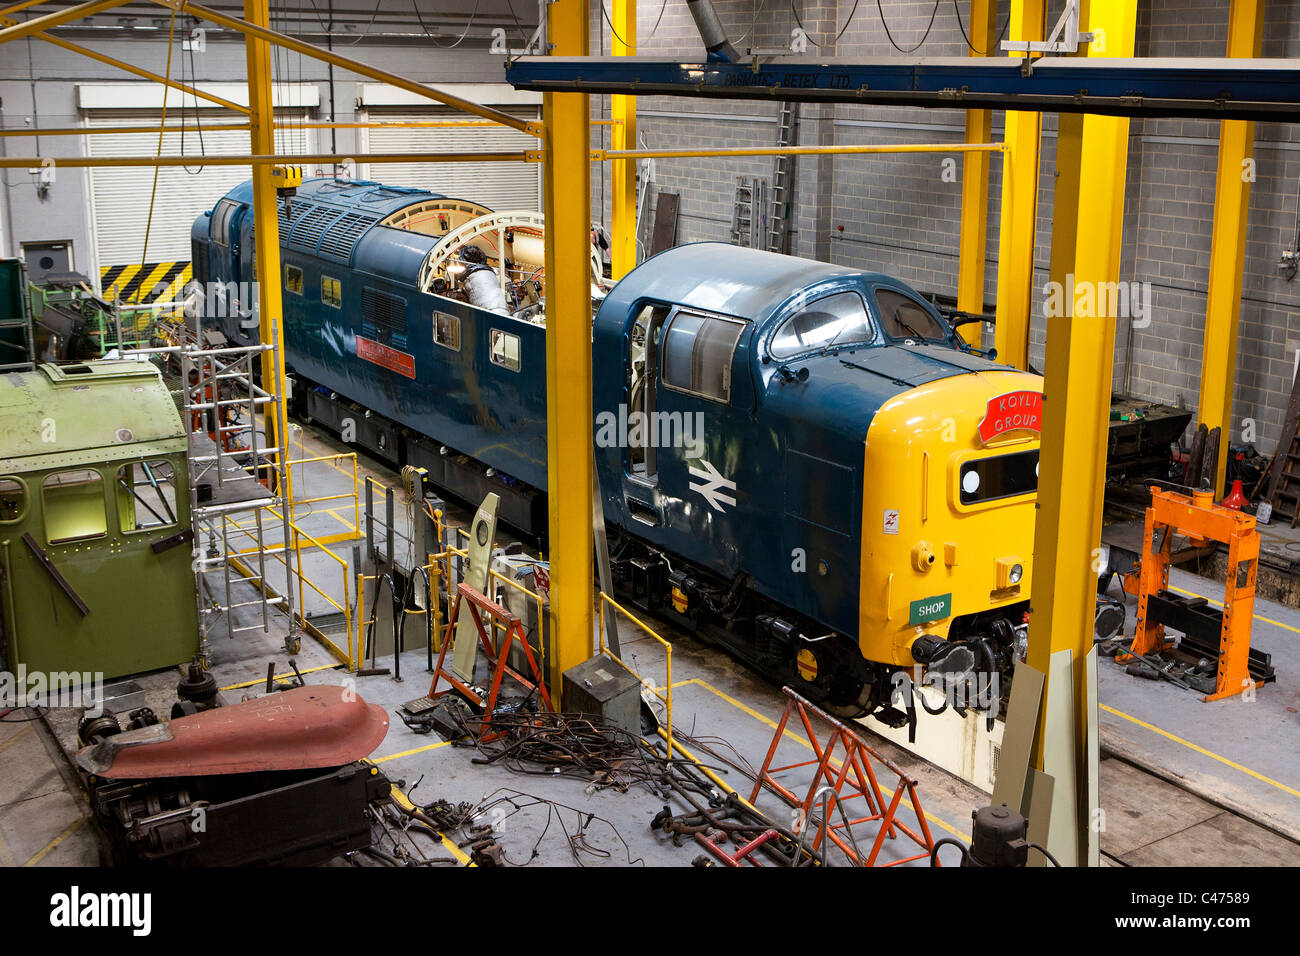 Engineering workshop at the National Railway Museum in York - Stock Image